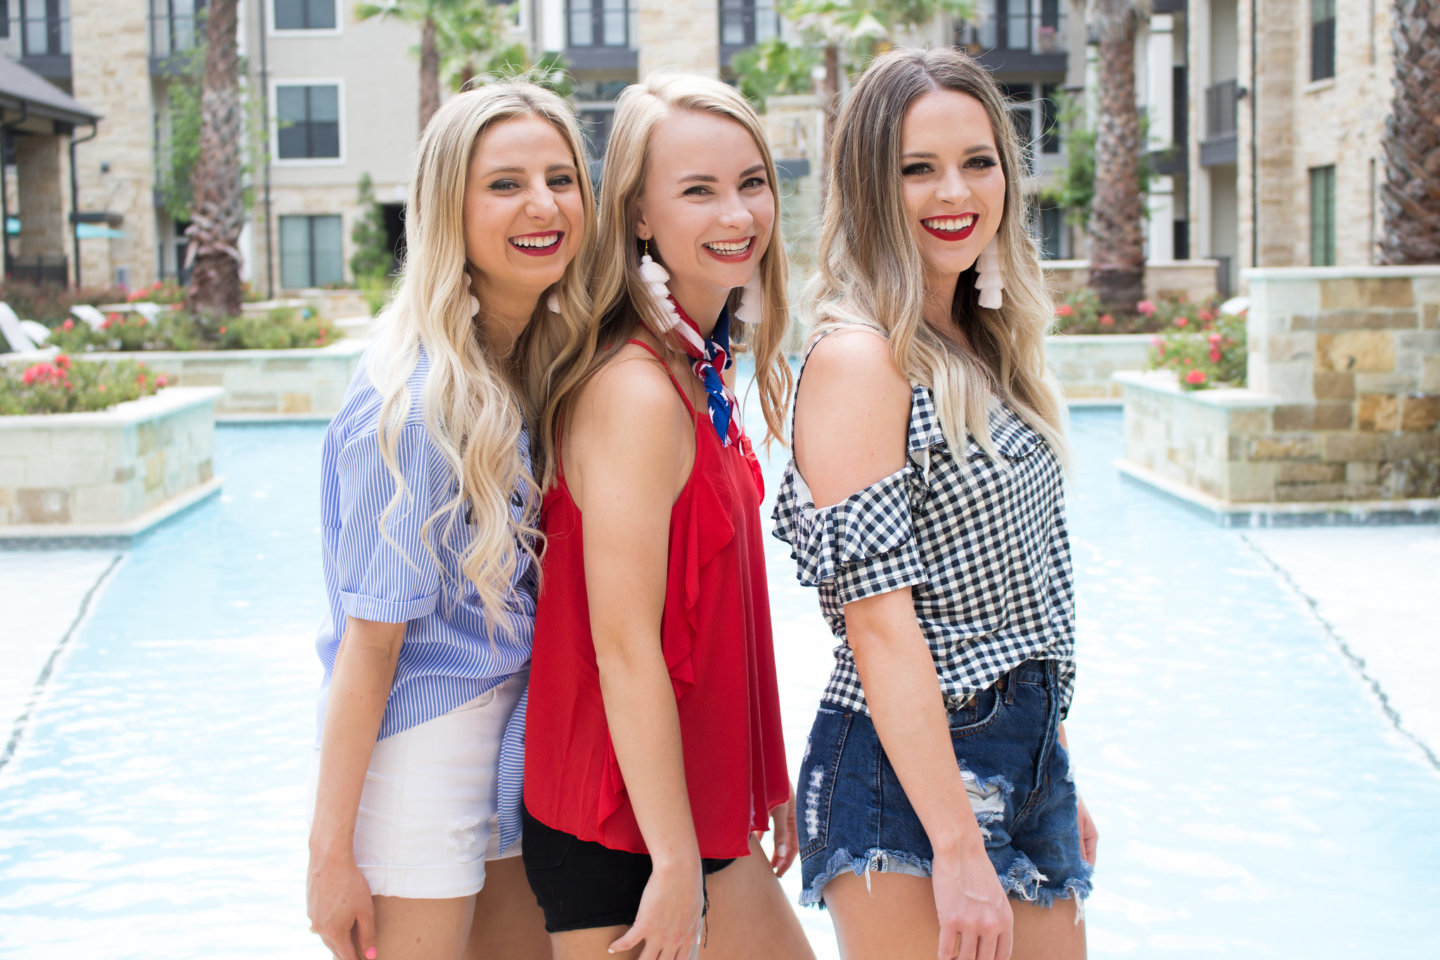 3 Outfit Ideas For The Fourth of July